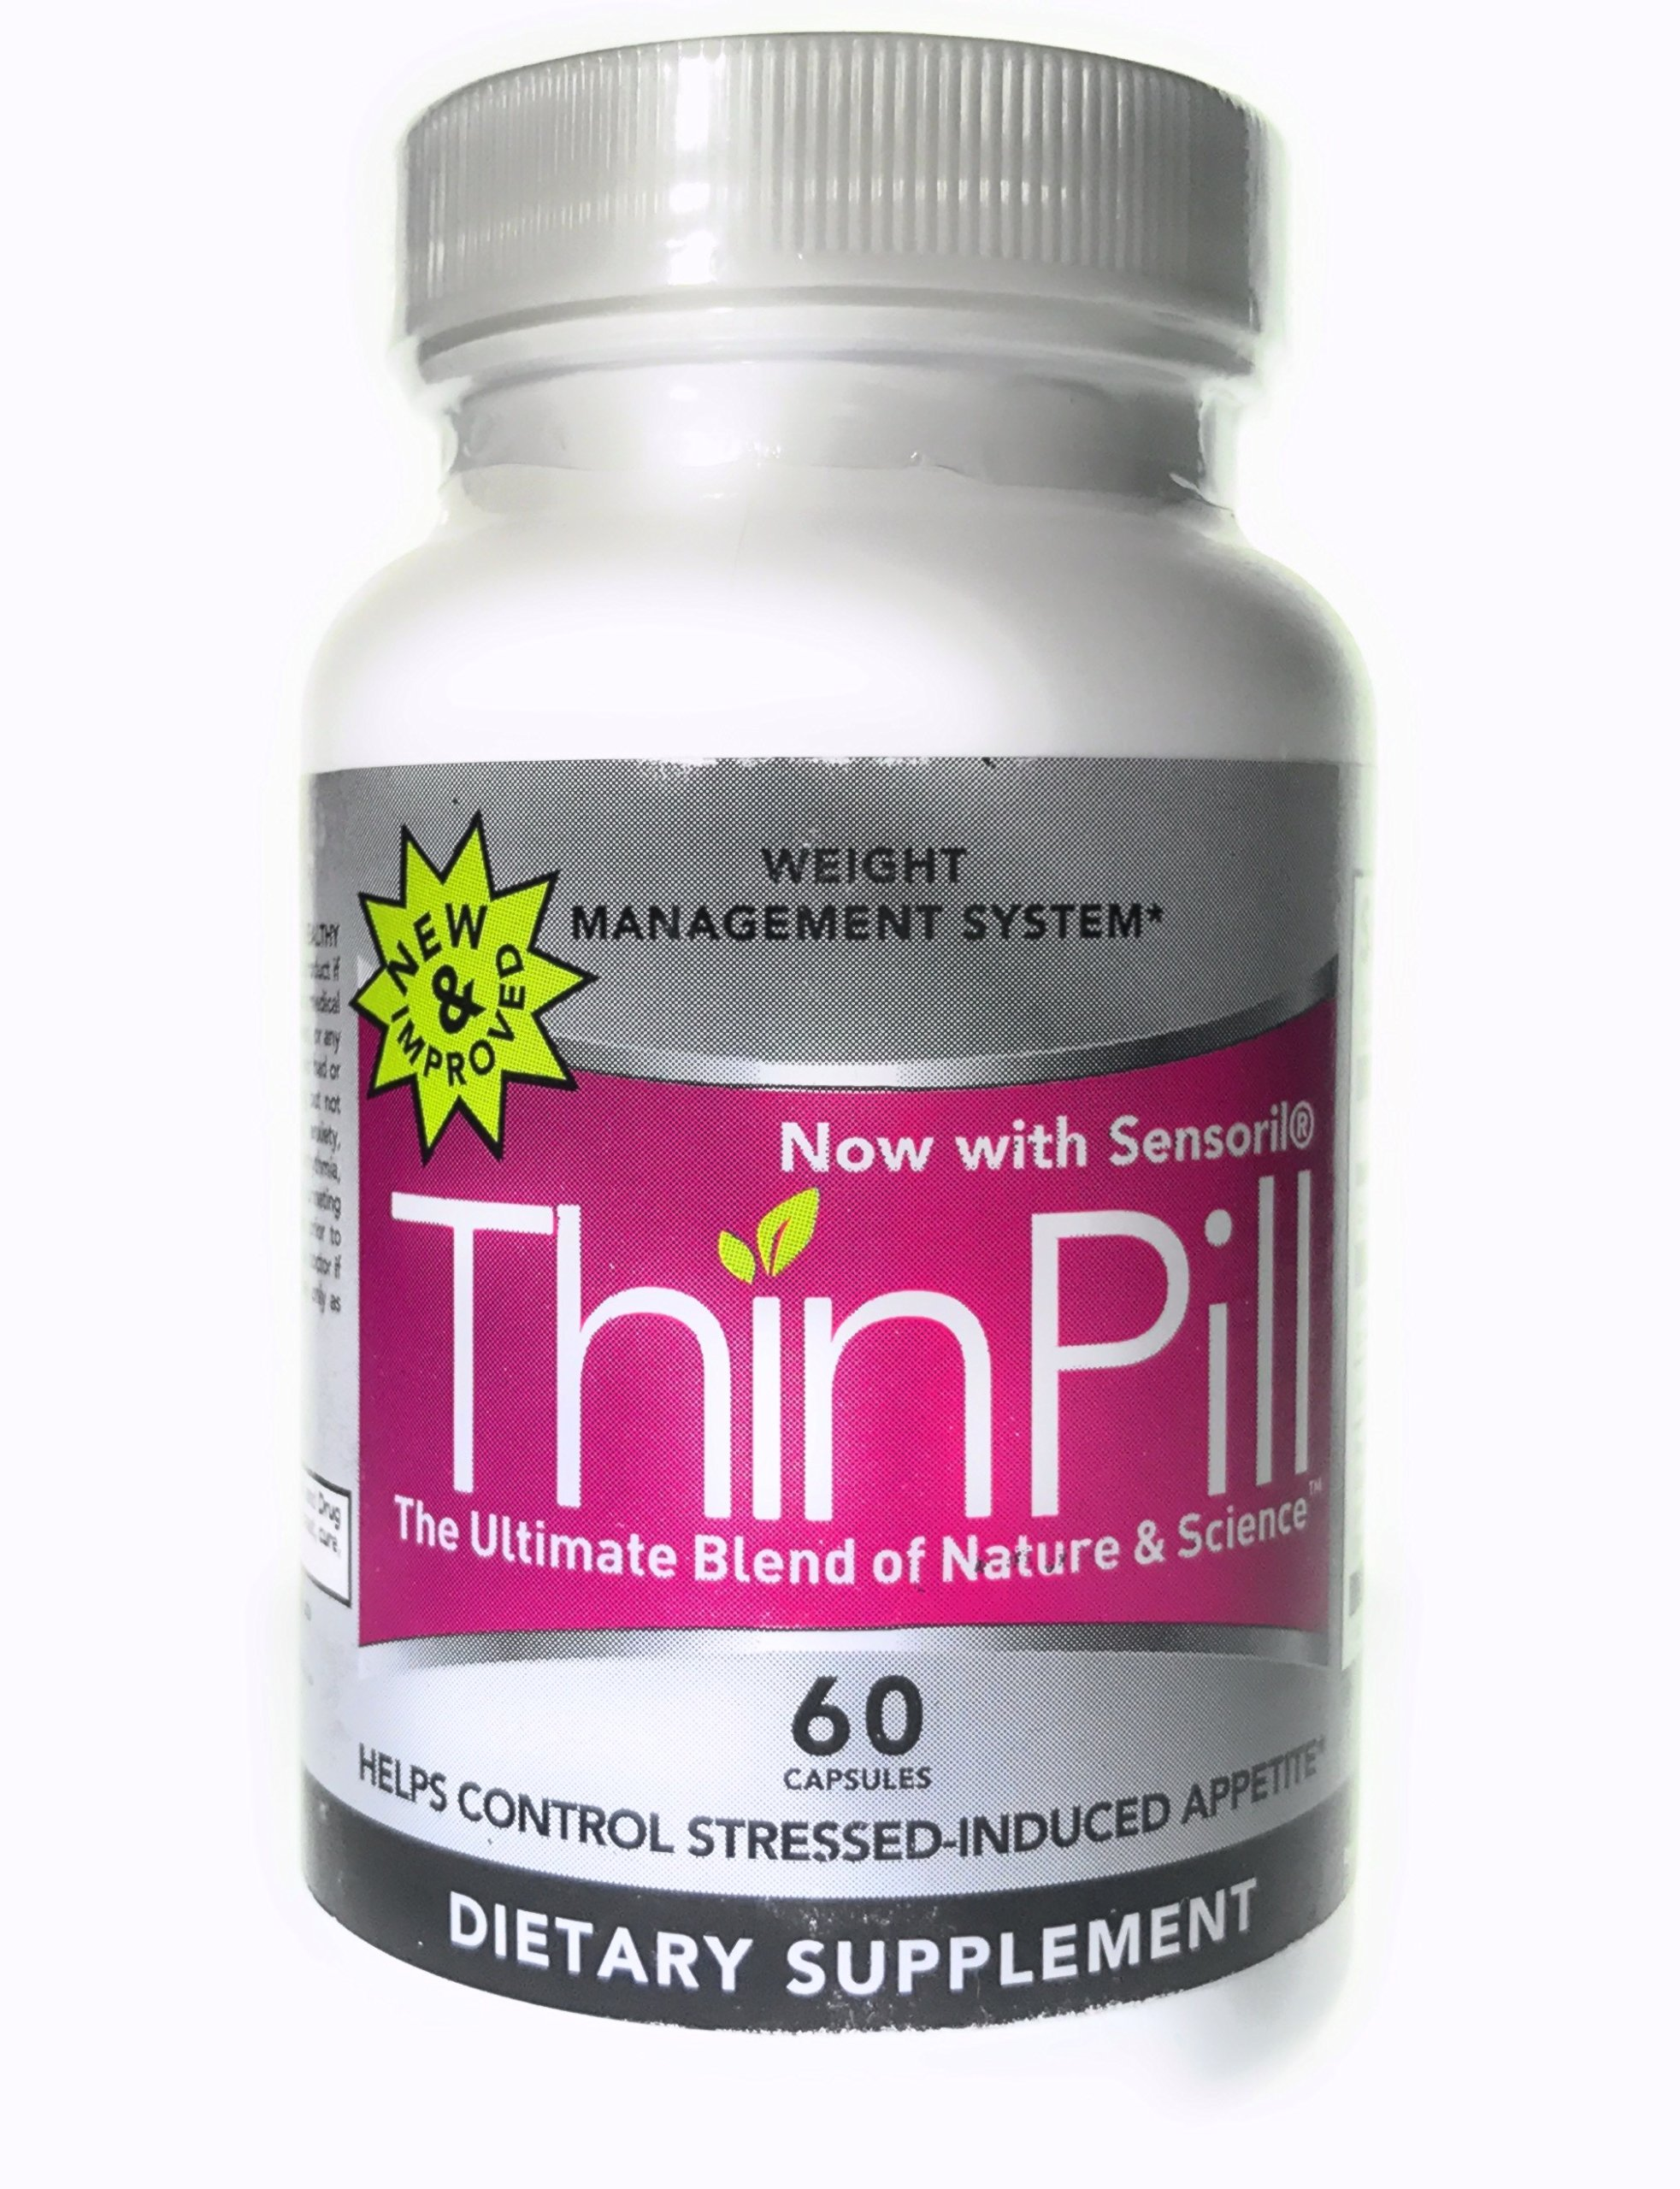 ThinPill - Thrermogenic Weight Loss Supplement - Proprietary Blend of L-Carnitine, L-Tyrosine and Green Tea extract - 60 Caps 30 Day Supply